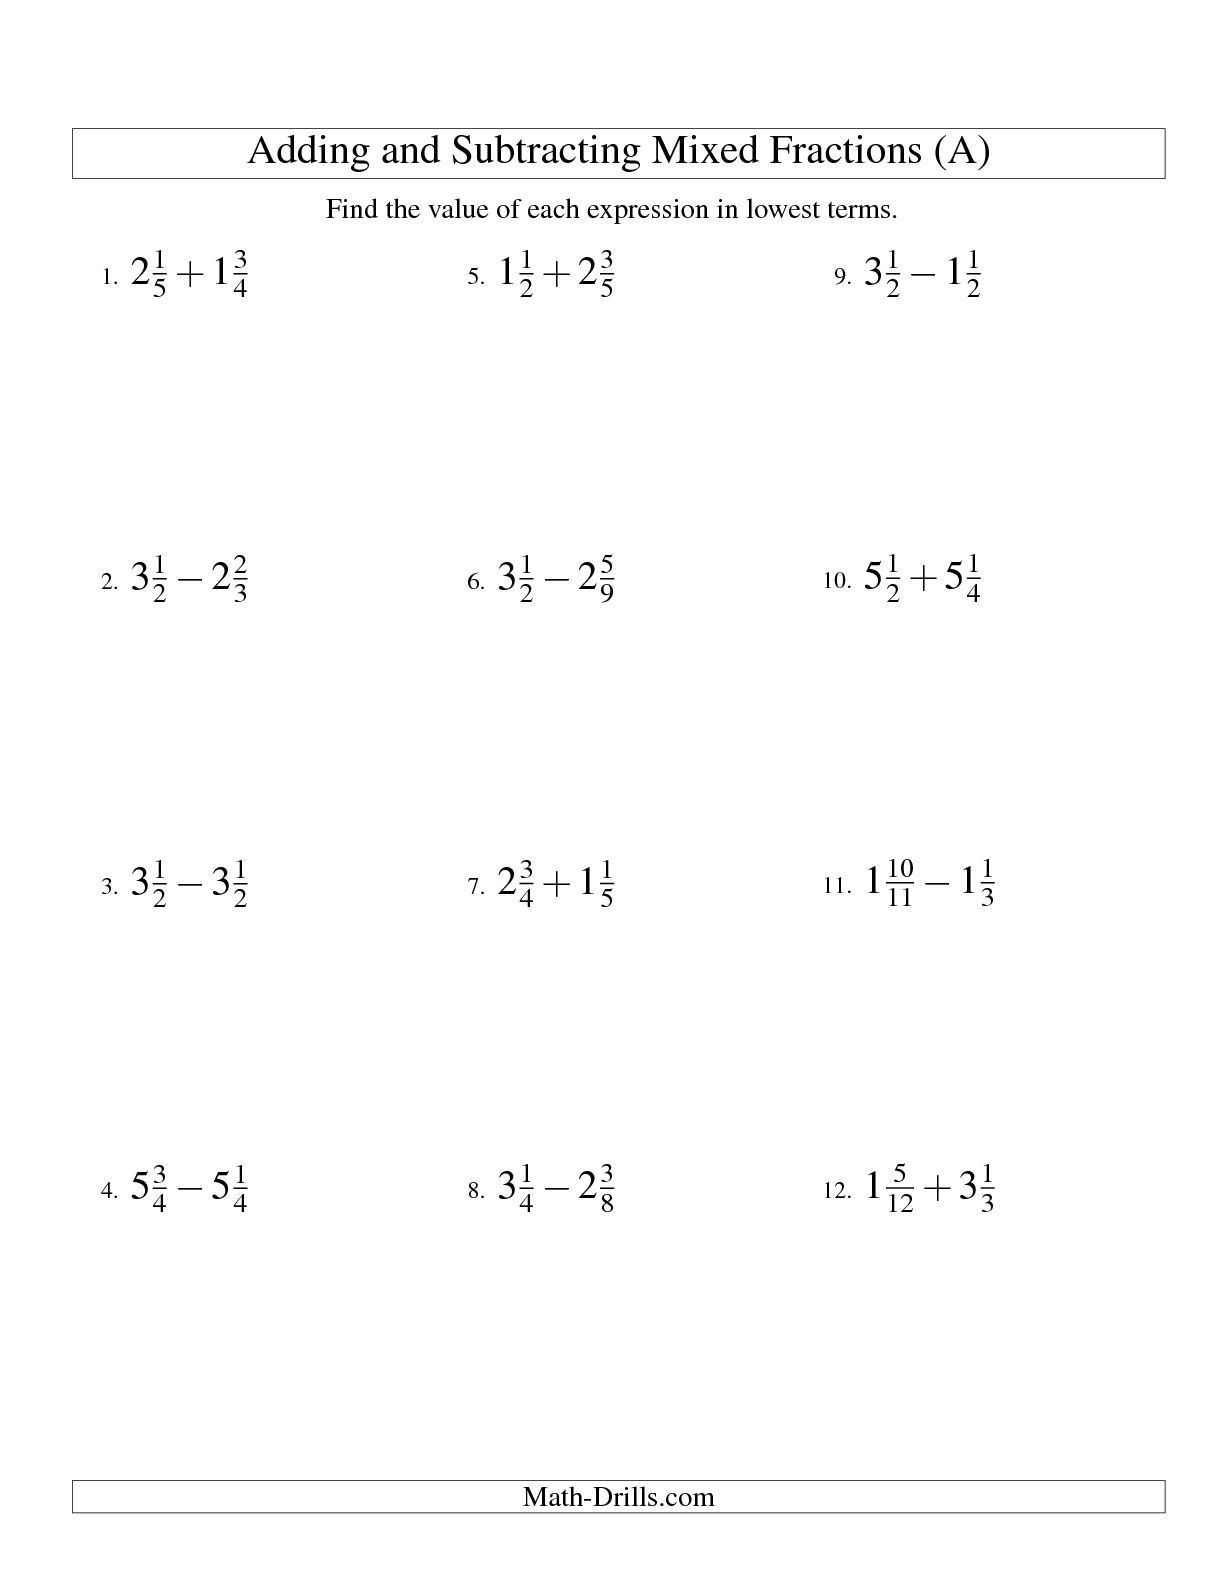 Adding Mixed Fractions With Different Denominators